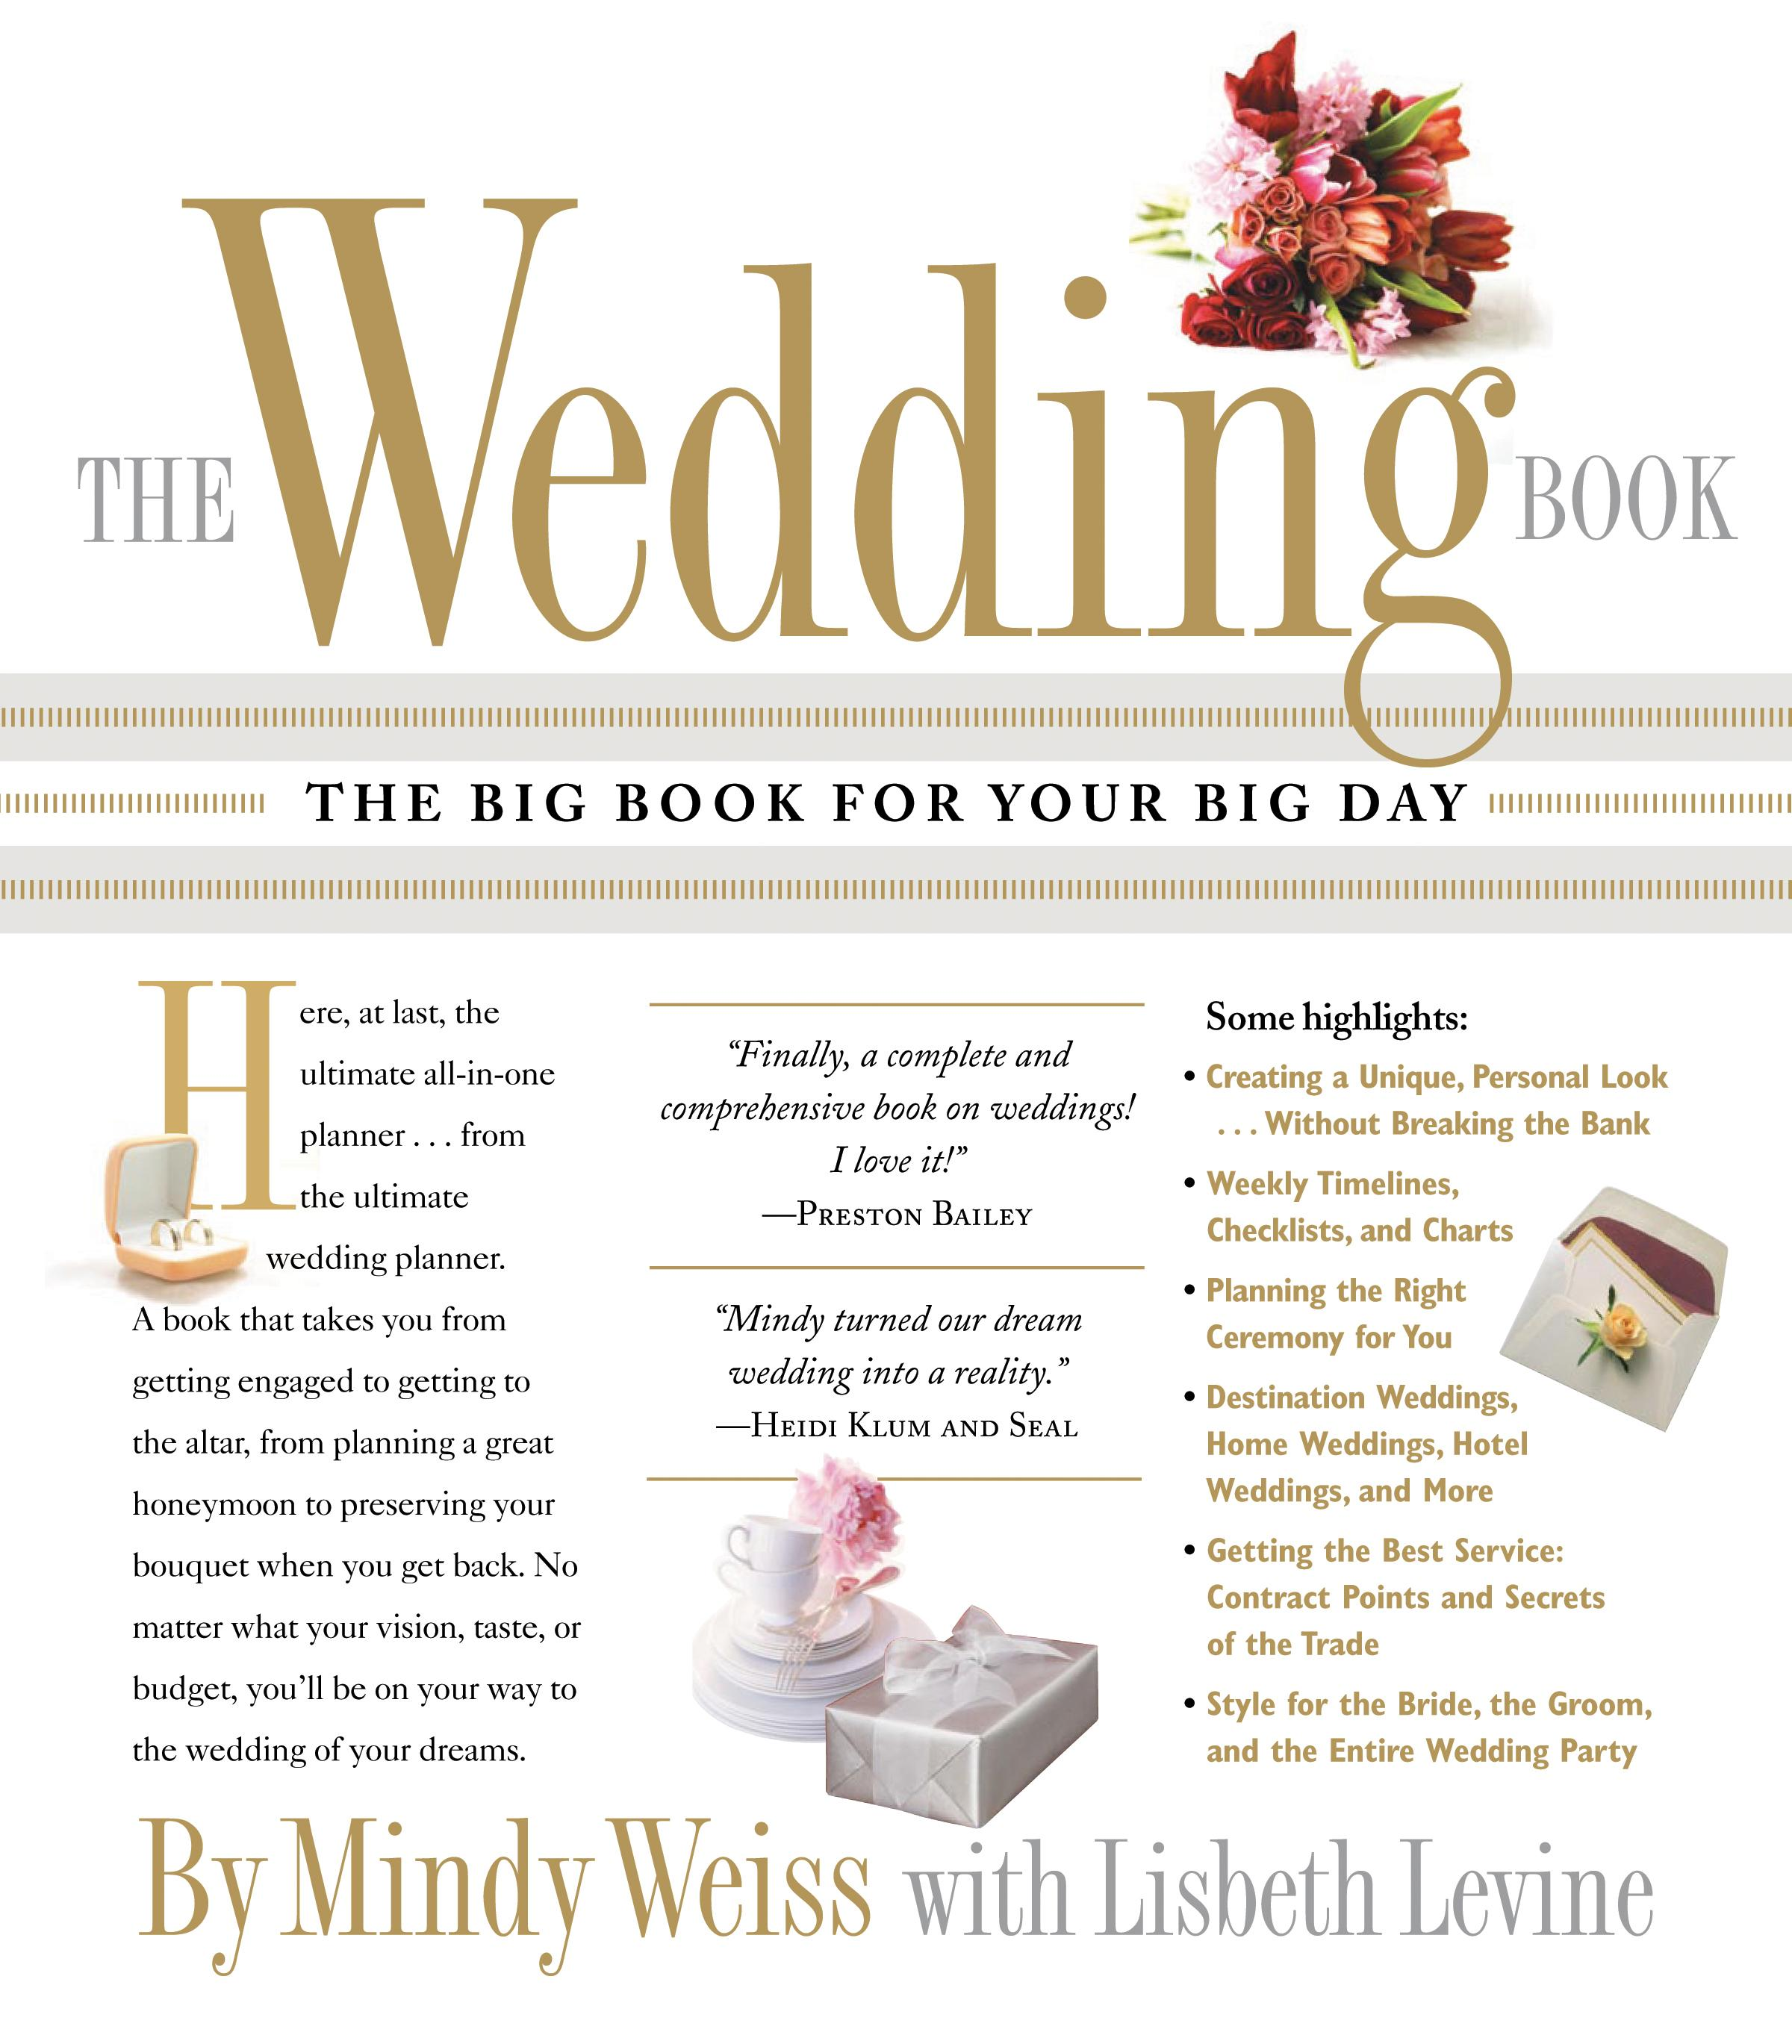 The Wedding Book: The Big Book for Your Big Day by Lisbeth Levine and Mindy Weiss